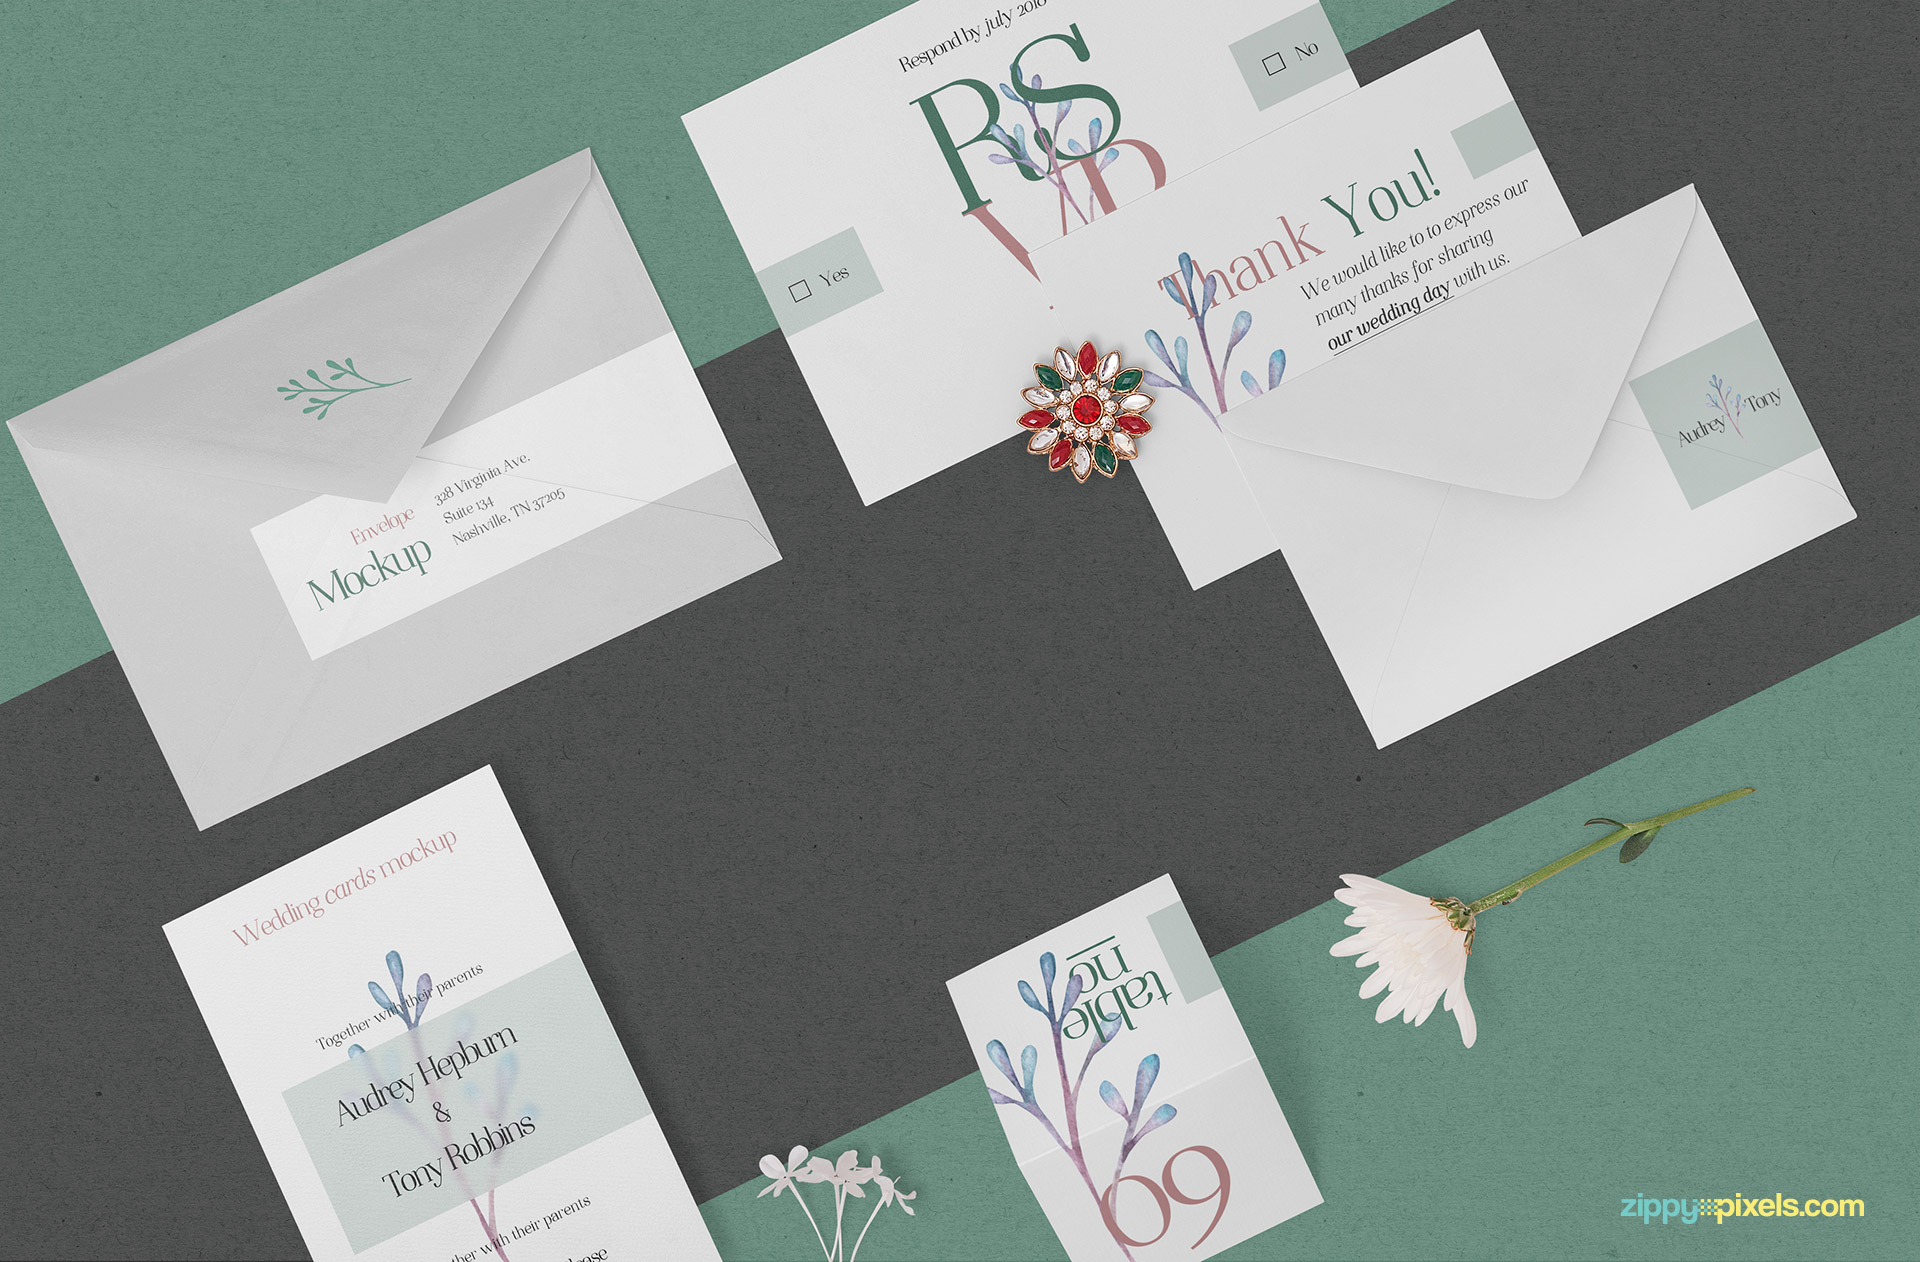 Beautiful wedding card mockup.